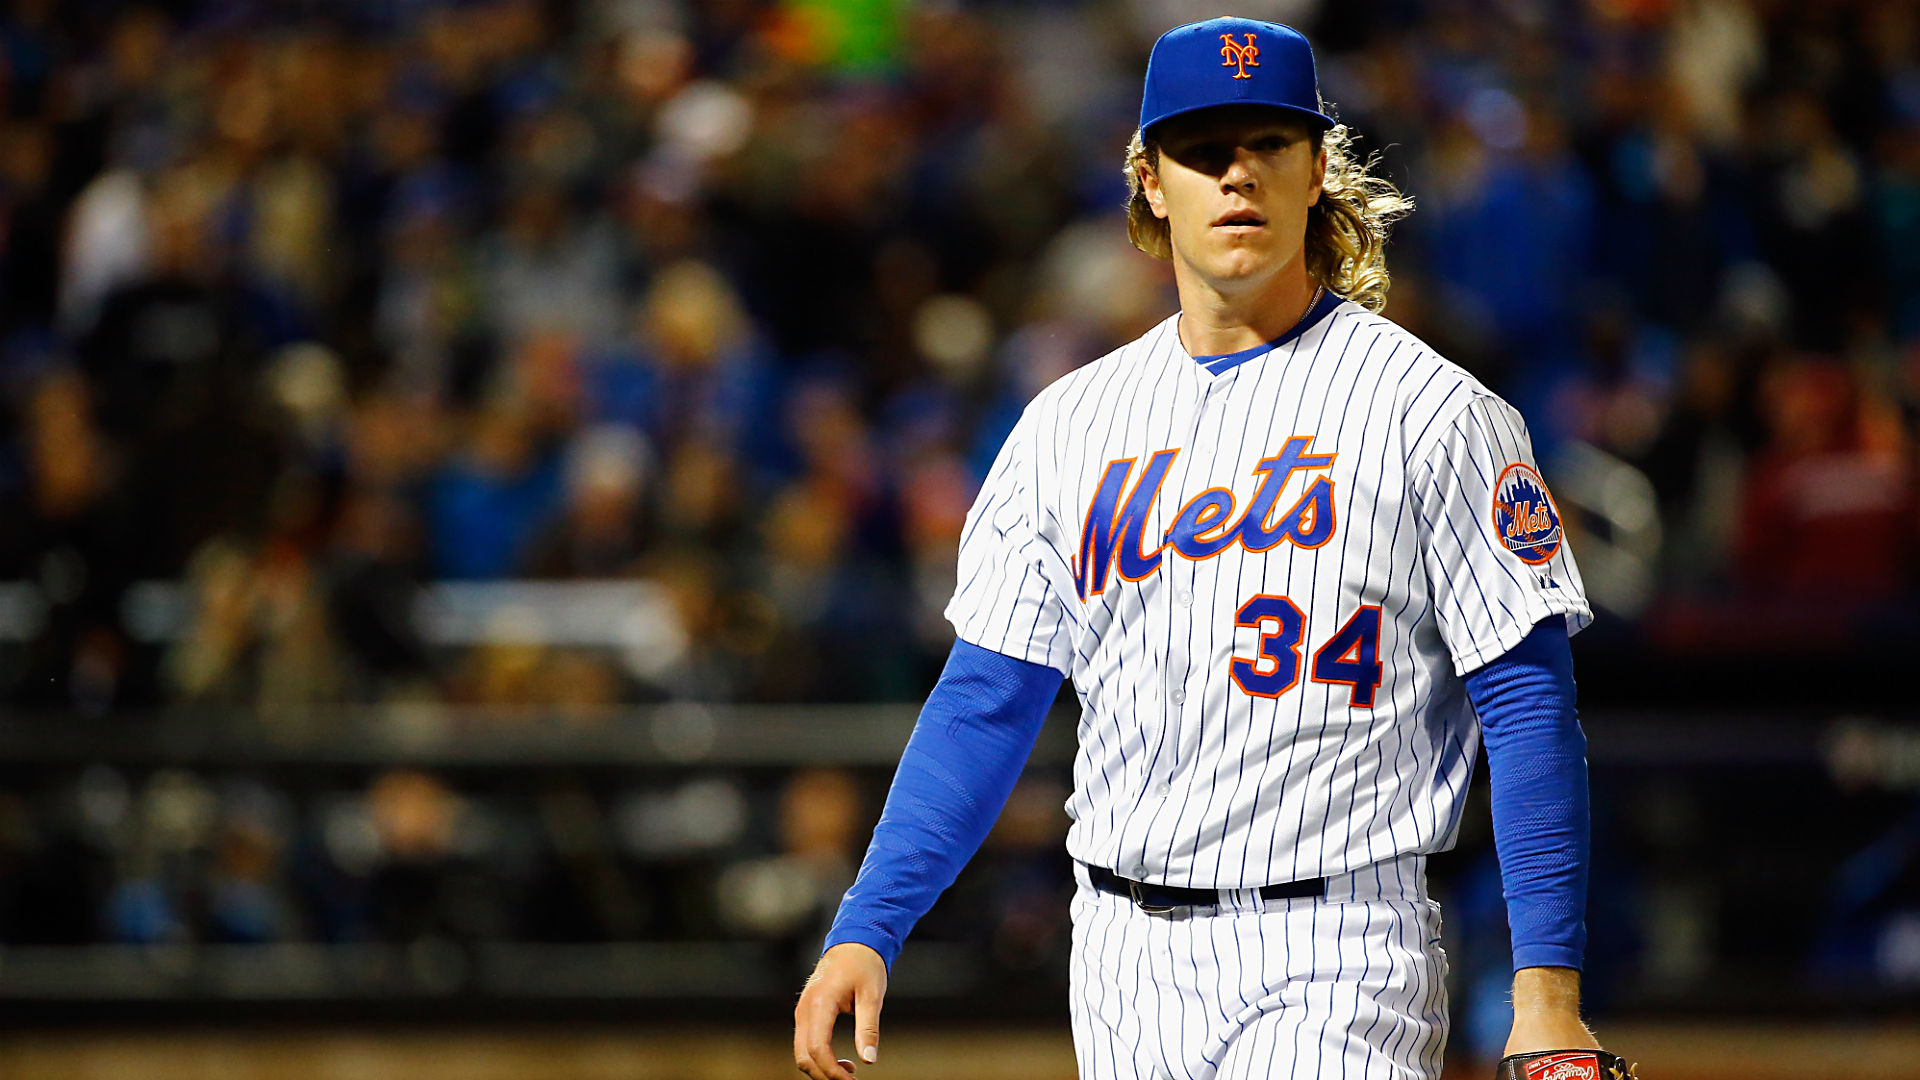 how tall is noah syndergaard